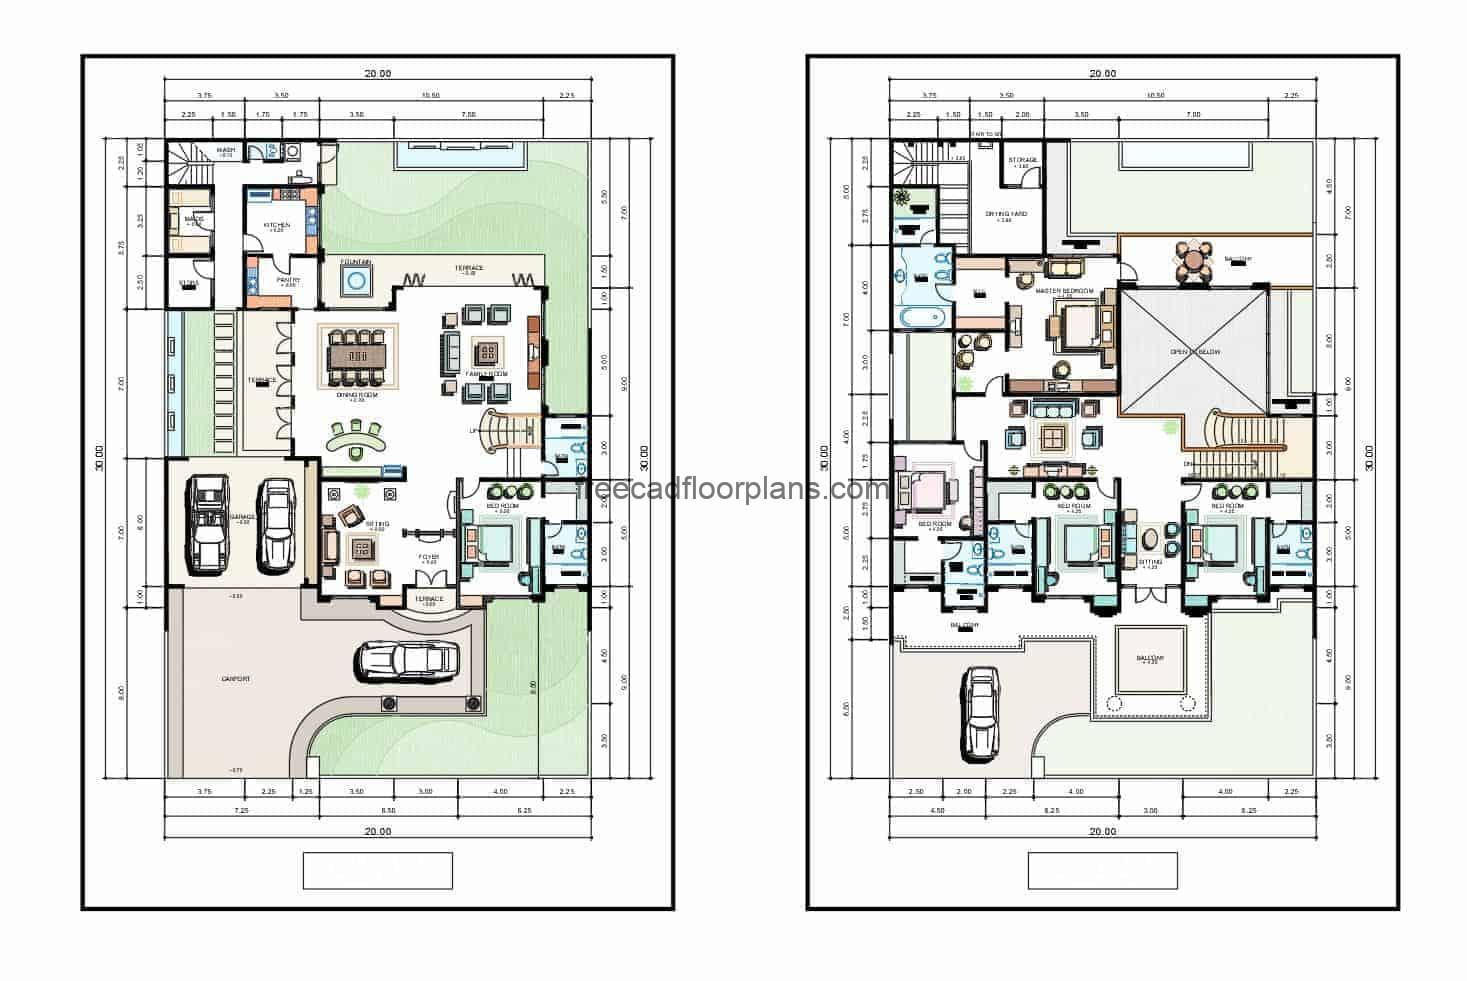 Two-storey residence drawing with four levels for free download in autocad DWG file